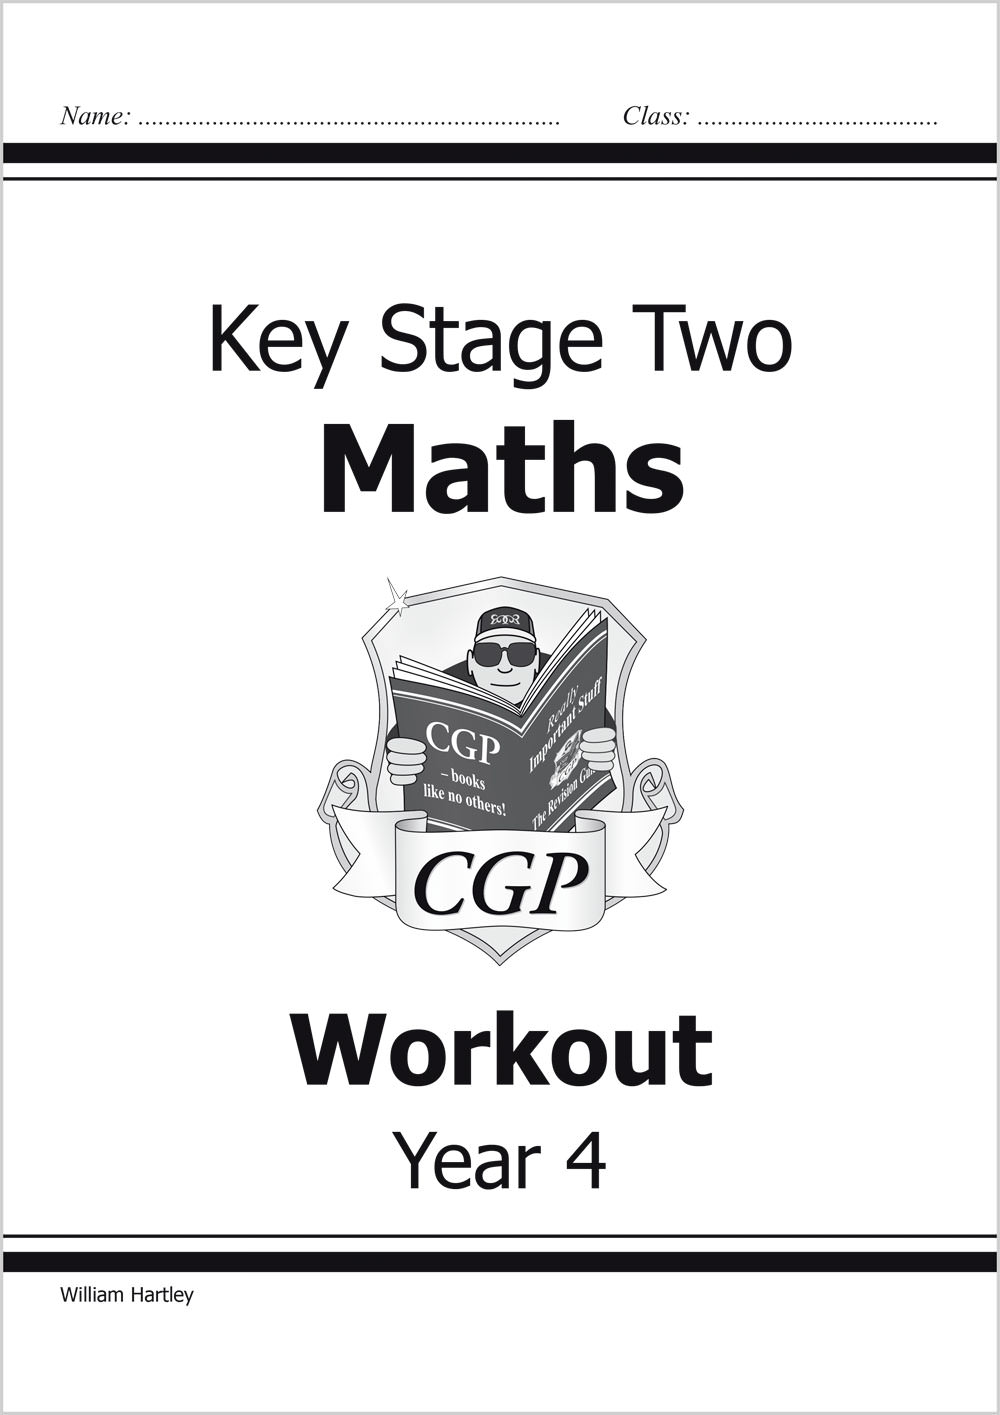 M4W21 - KS2 Maths Workout - Year 4